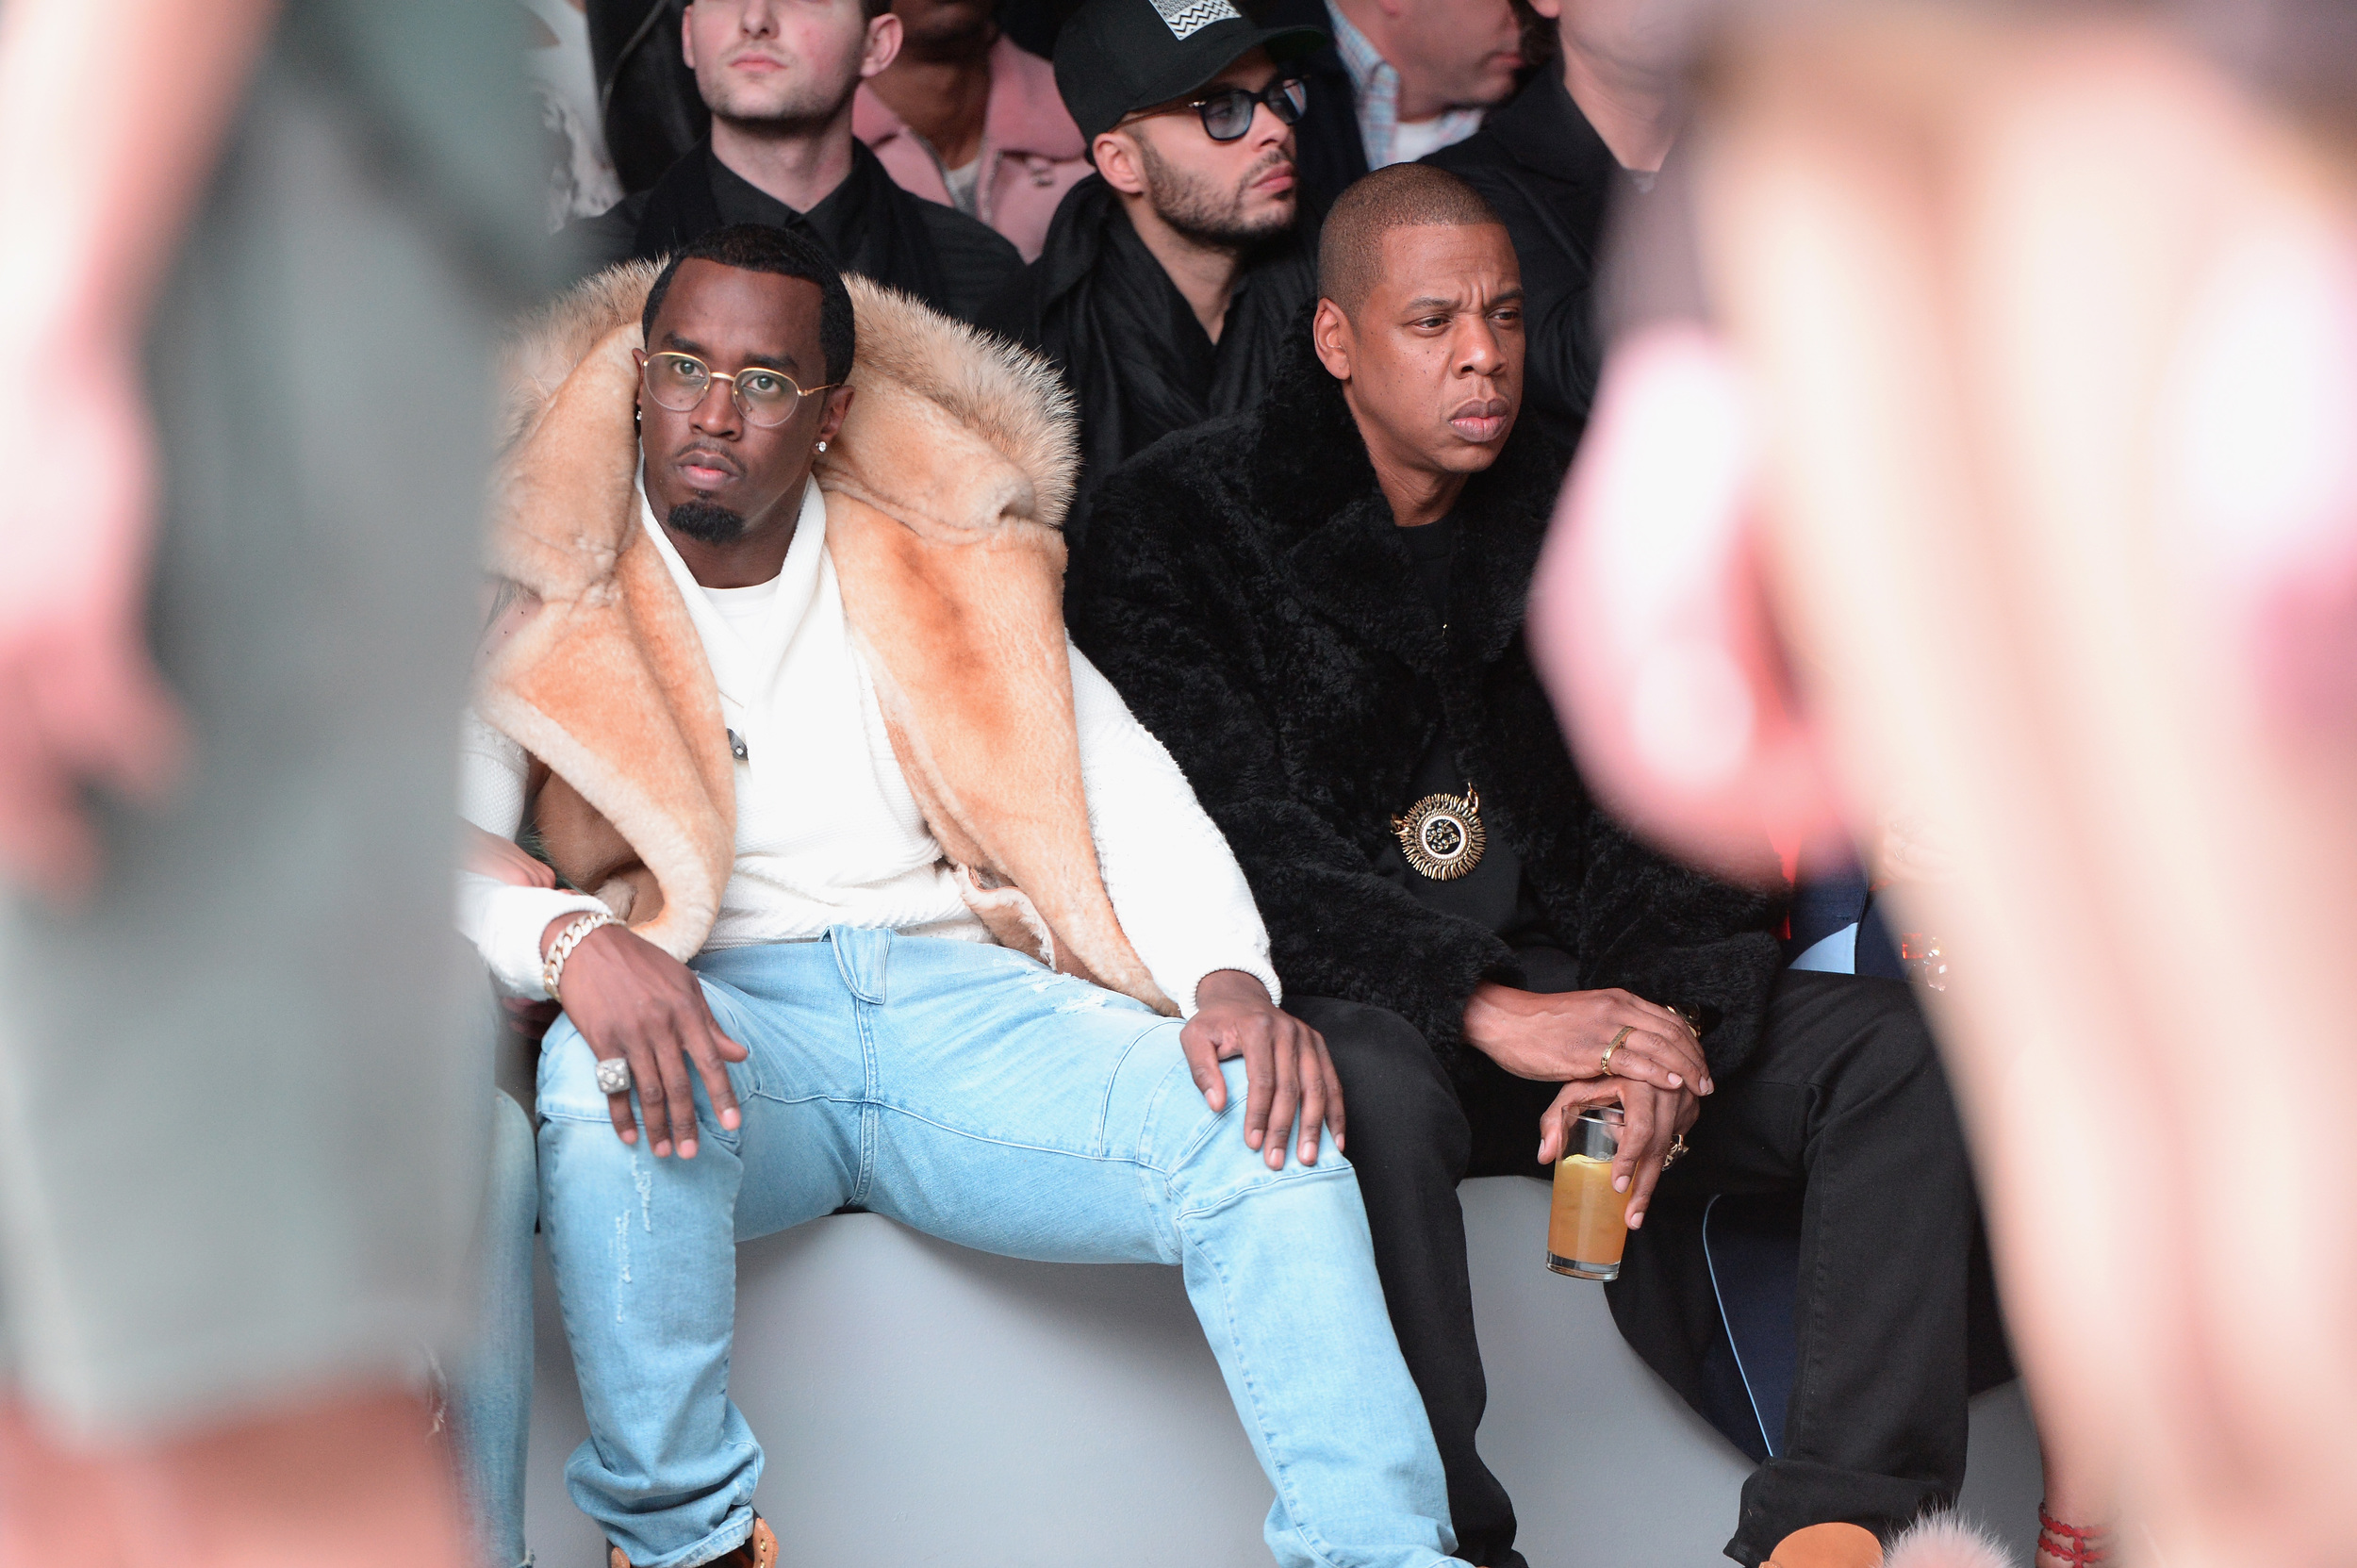 ... adidas Originals x Kanye West YEEZY SEASON 1 collection. 7. Diddy and  Jay Z